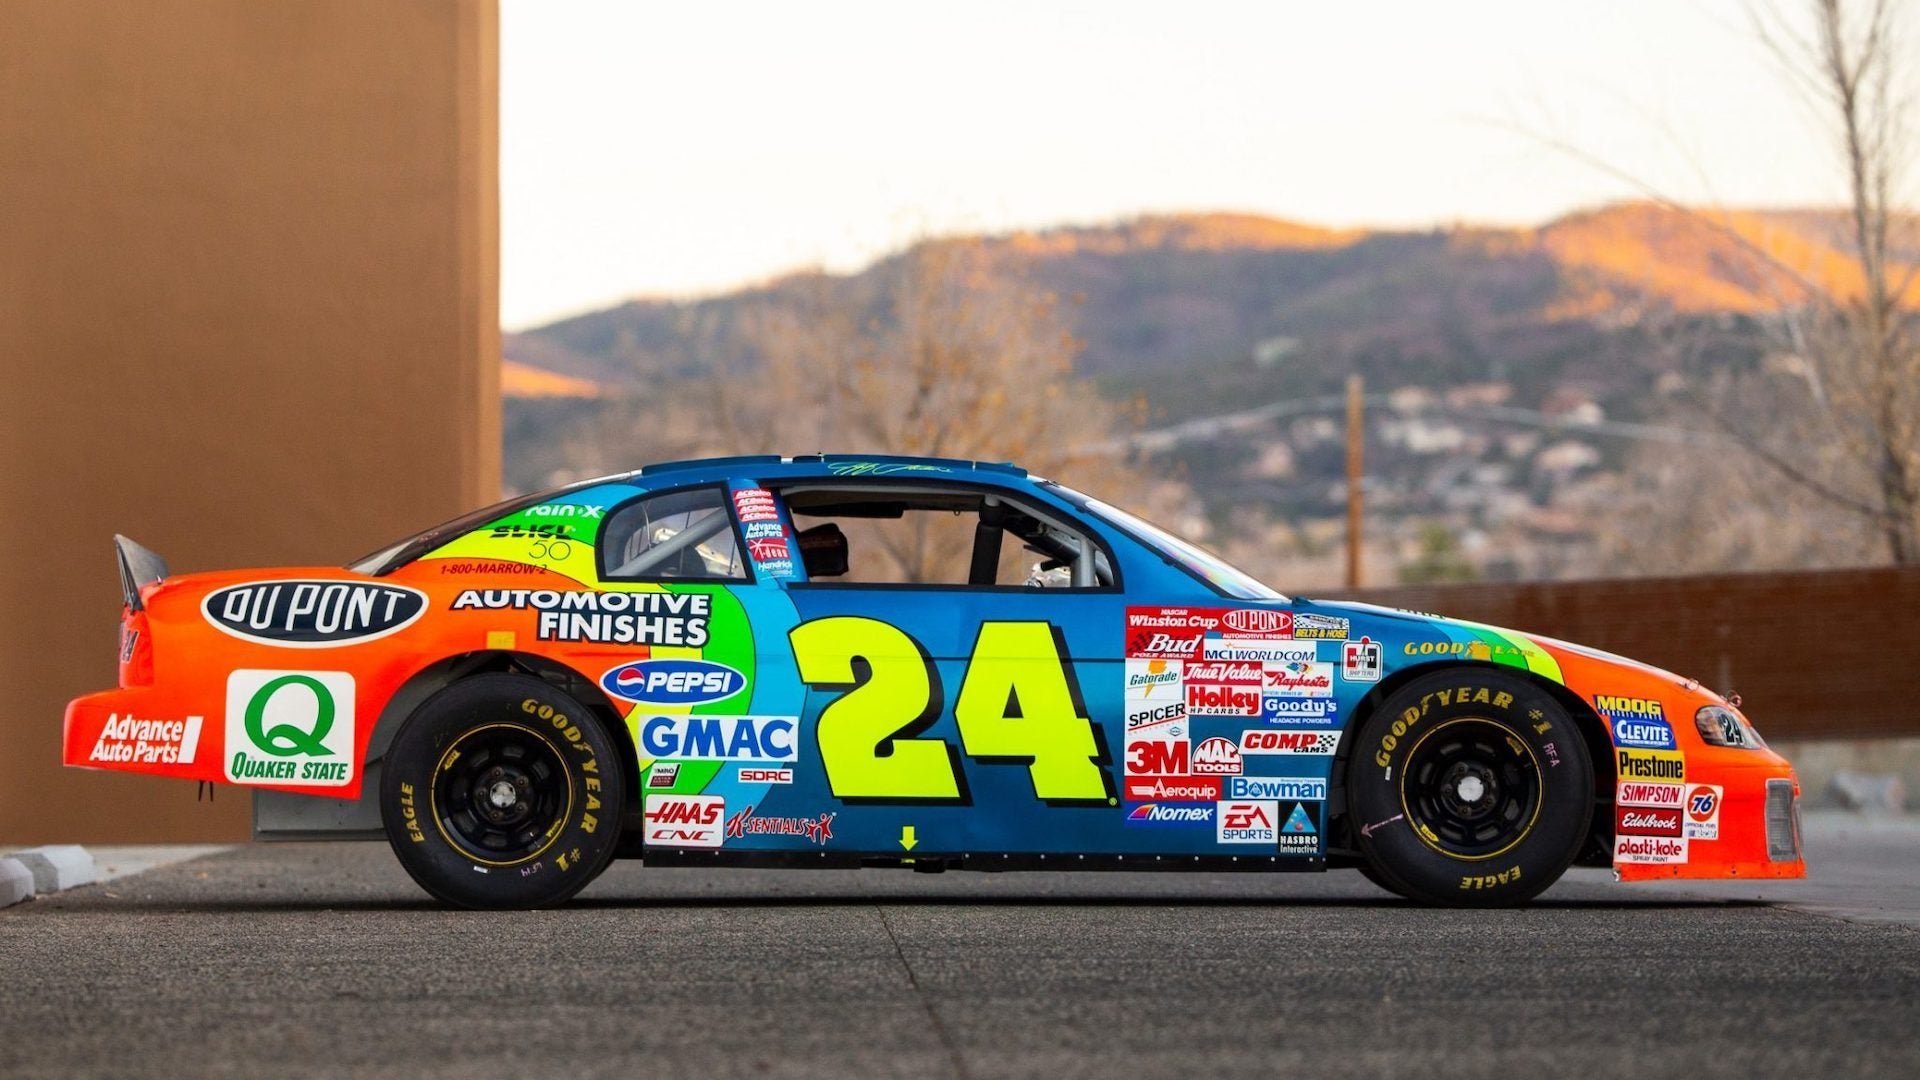 Jeff Gordon S Former Nascar Chevy Monte Carlo Would Make A Top Shelf Track Toy